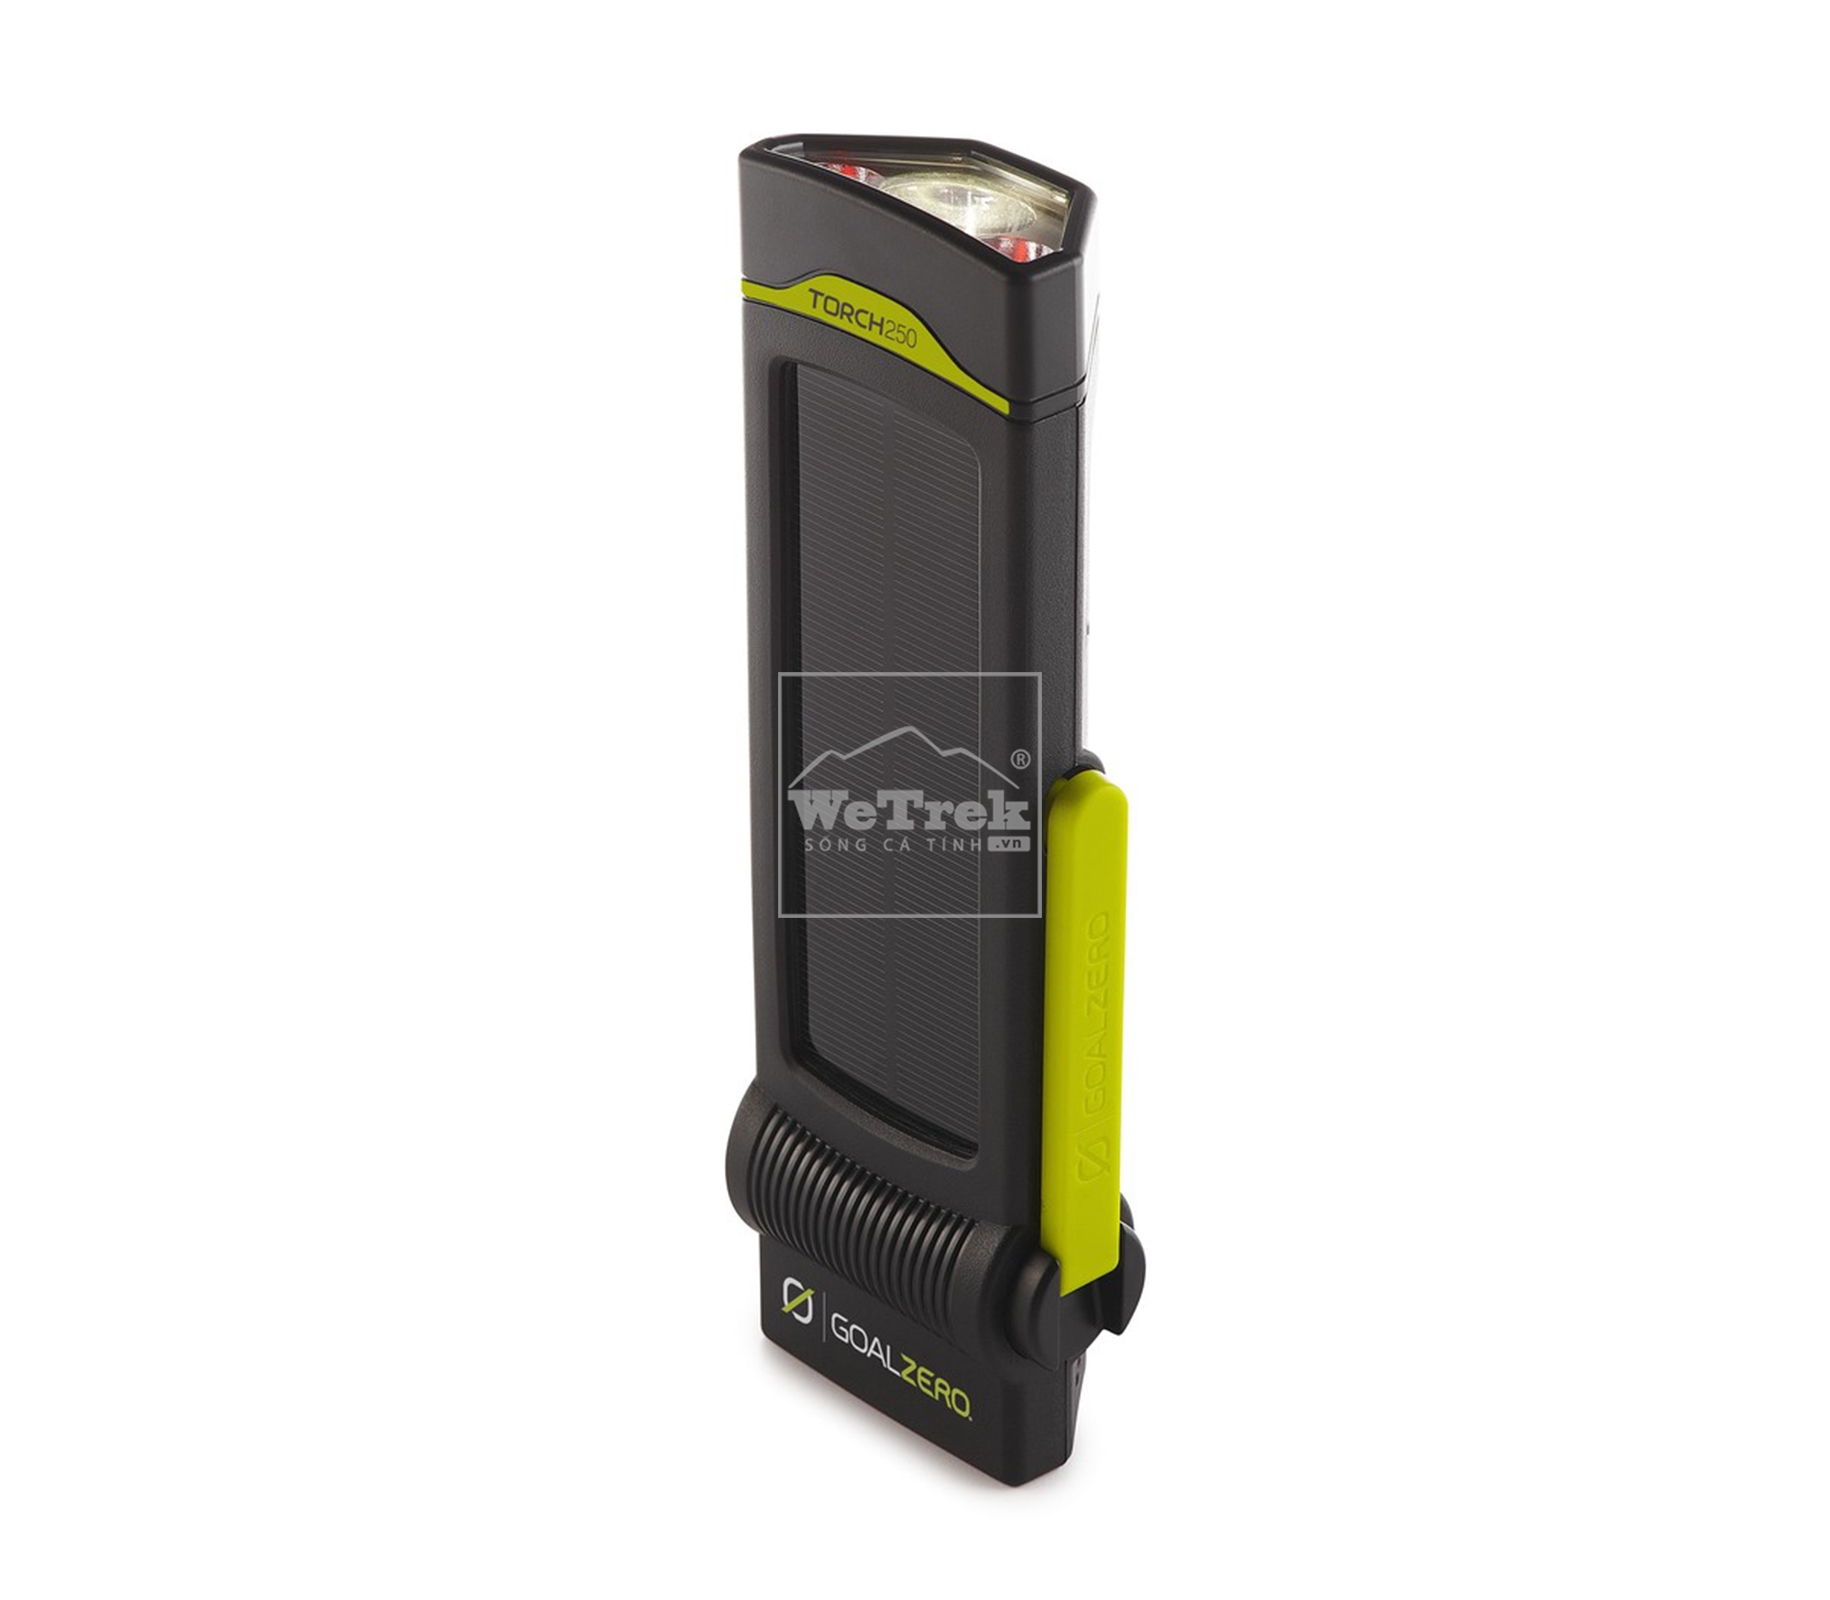 den-pin-Goal-Zero-Torch-250-Flashlight-90110-8271-wetrekvn-7.jpg